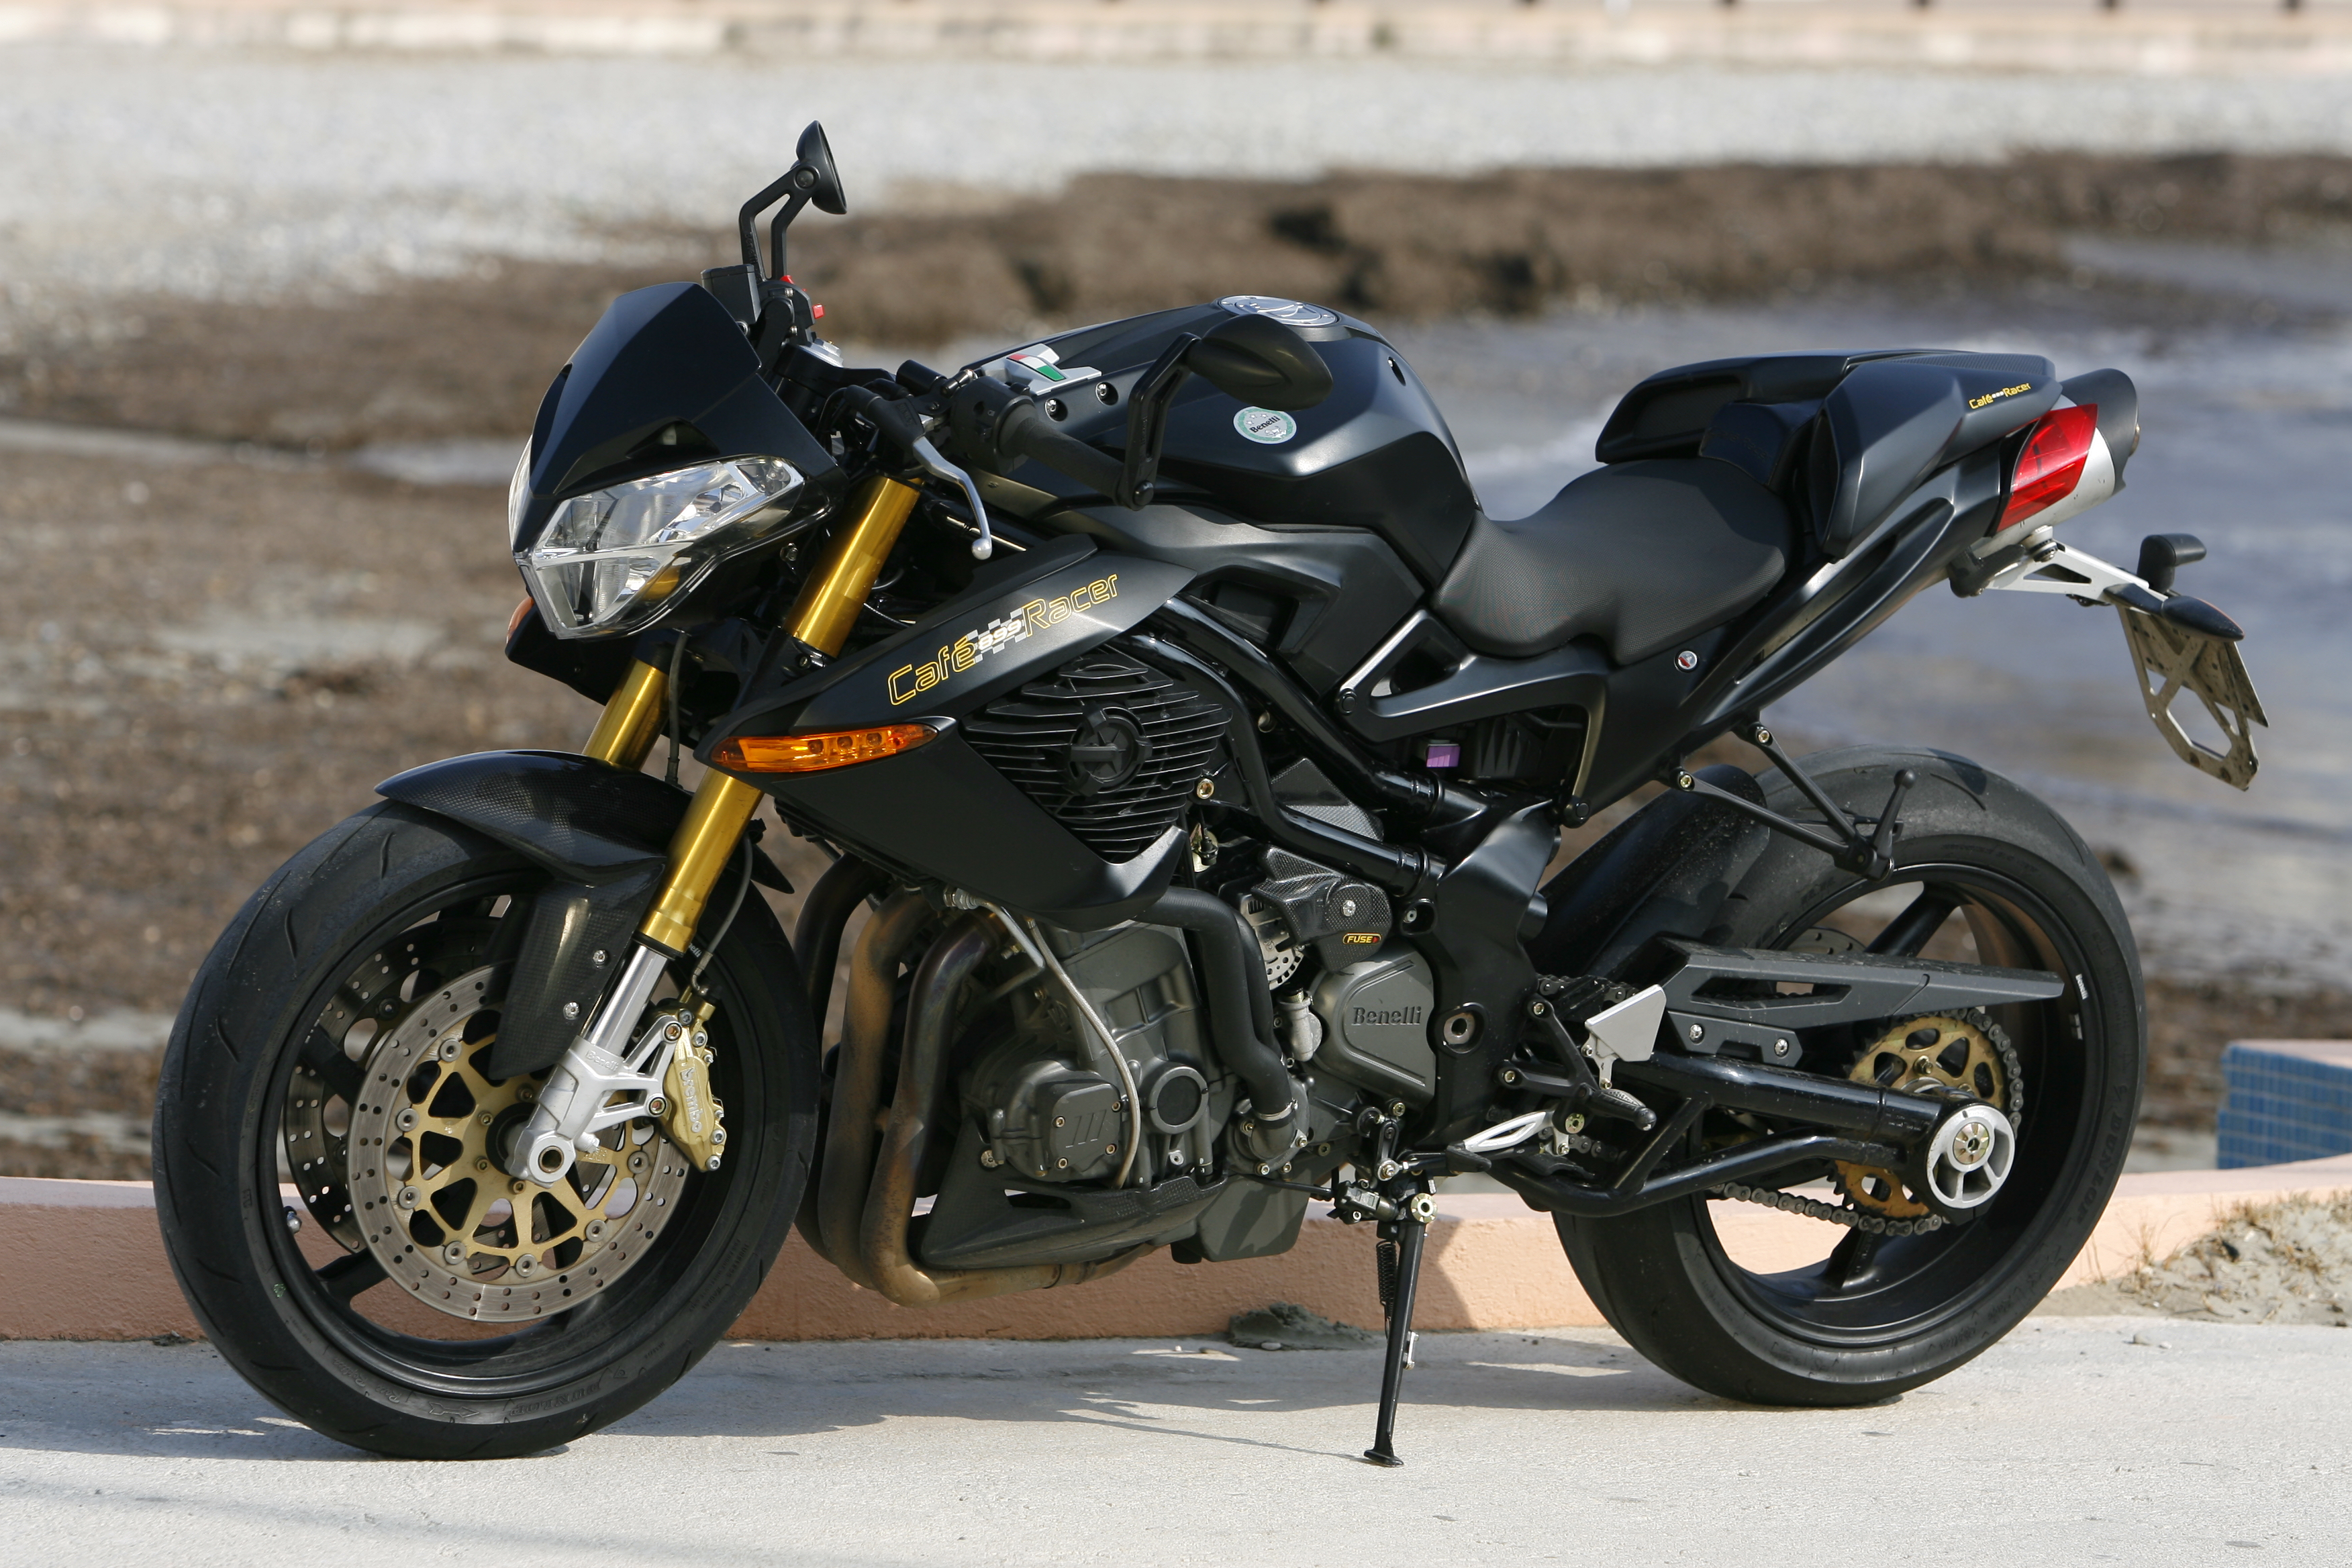 Benelli Cafe Racer 899 #15